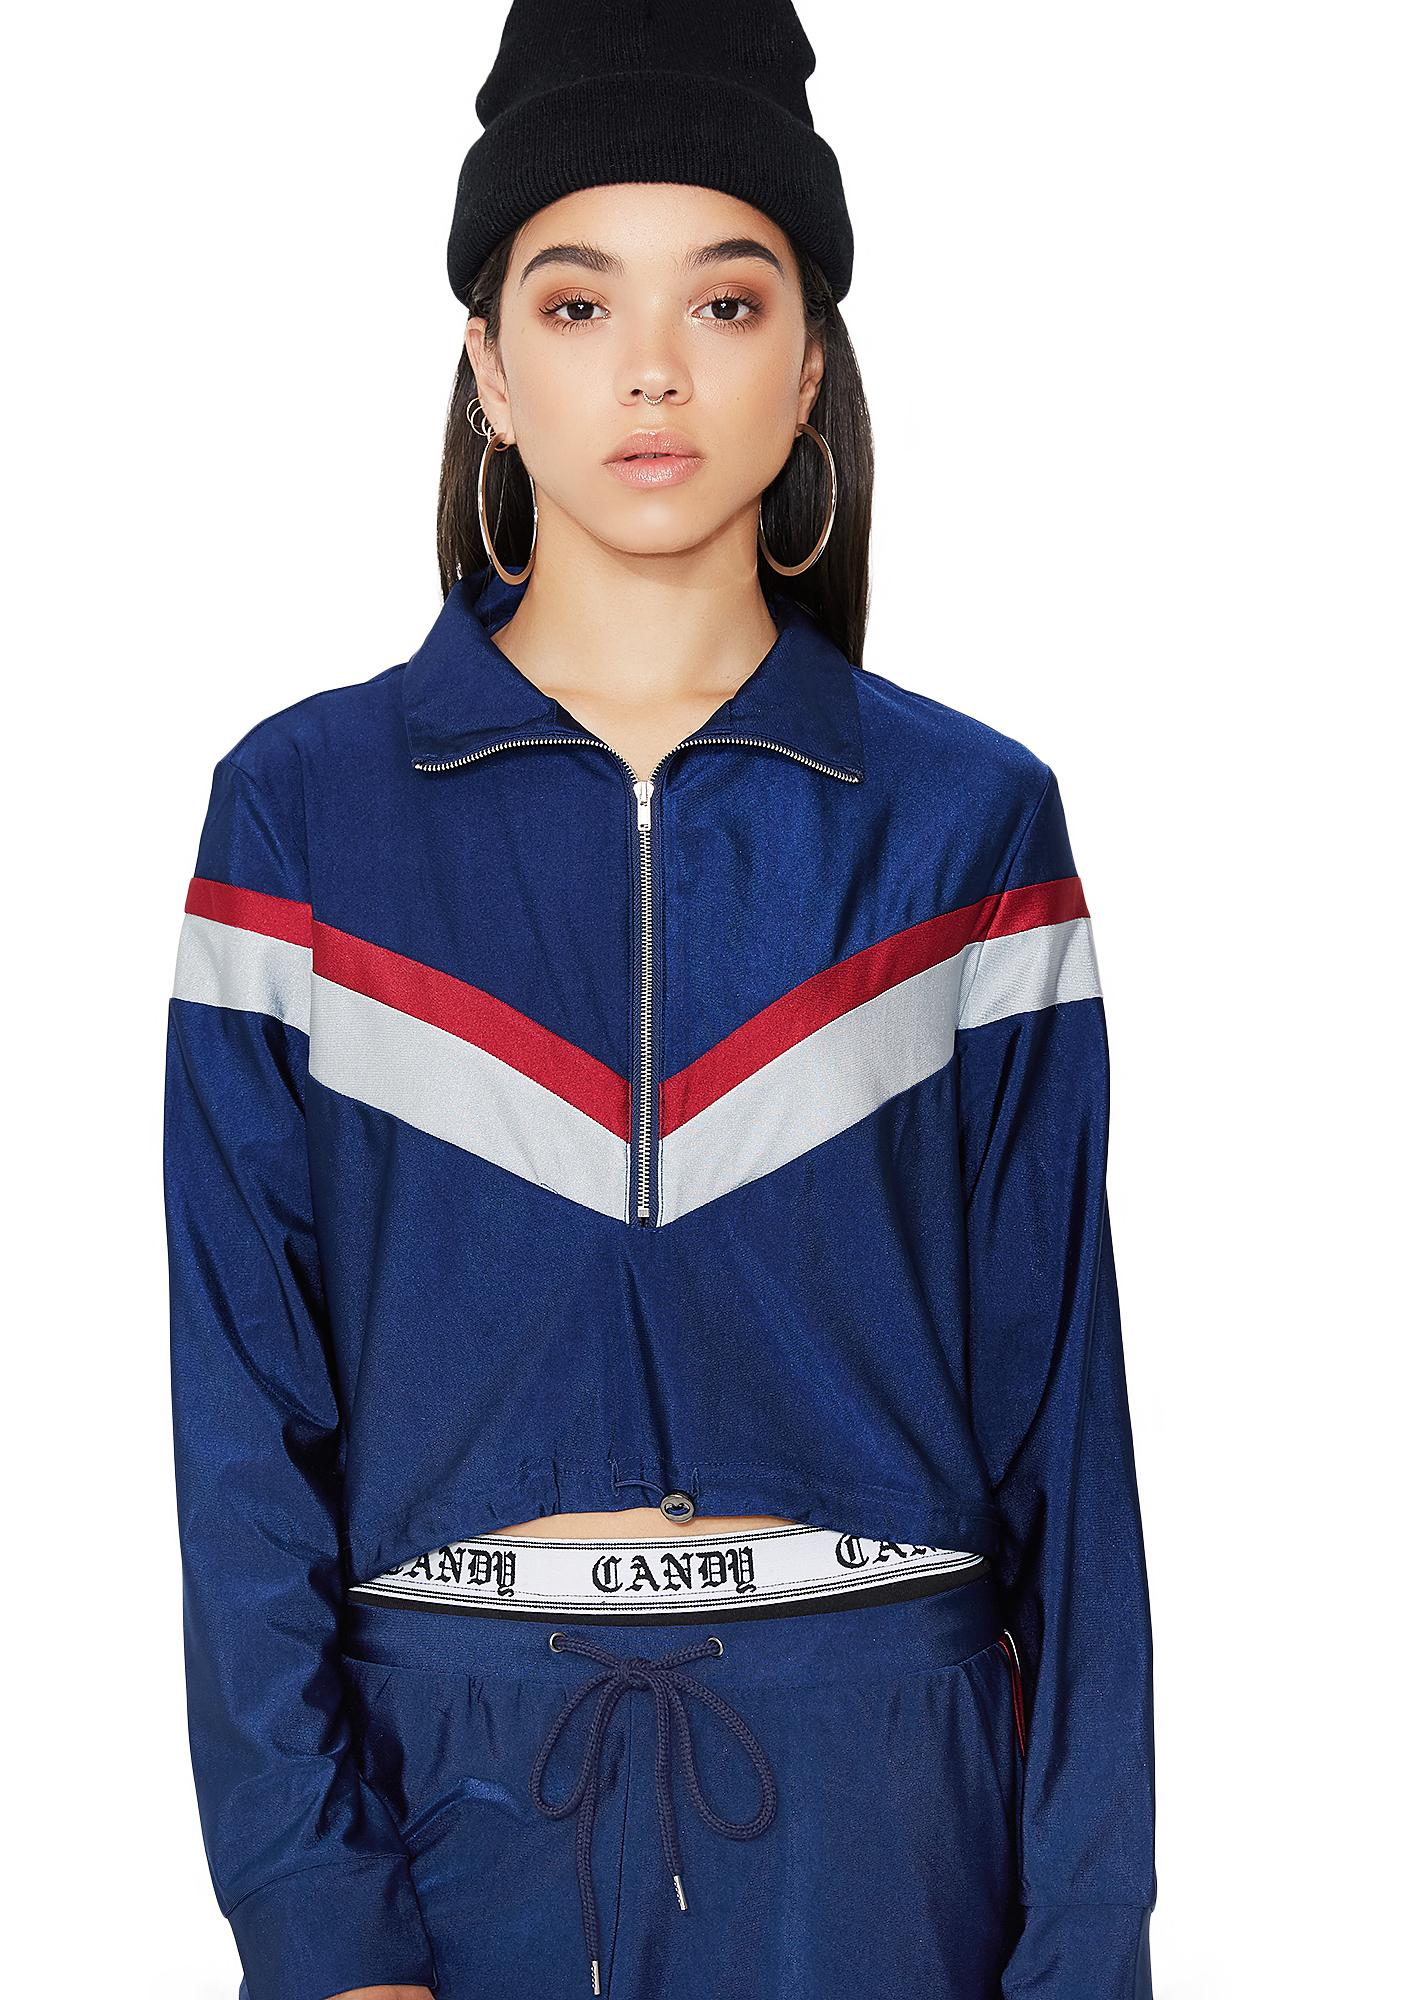 She's Got Game Striped Track Pullover